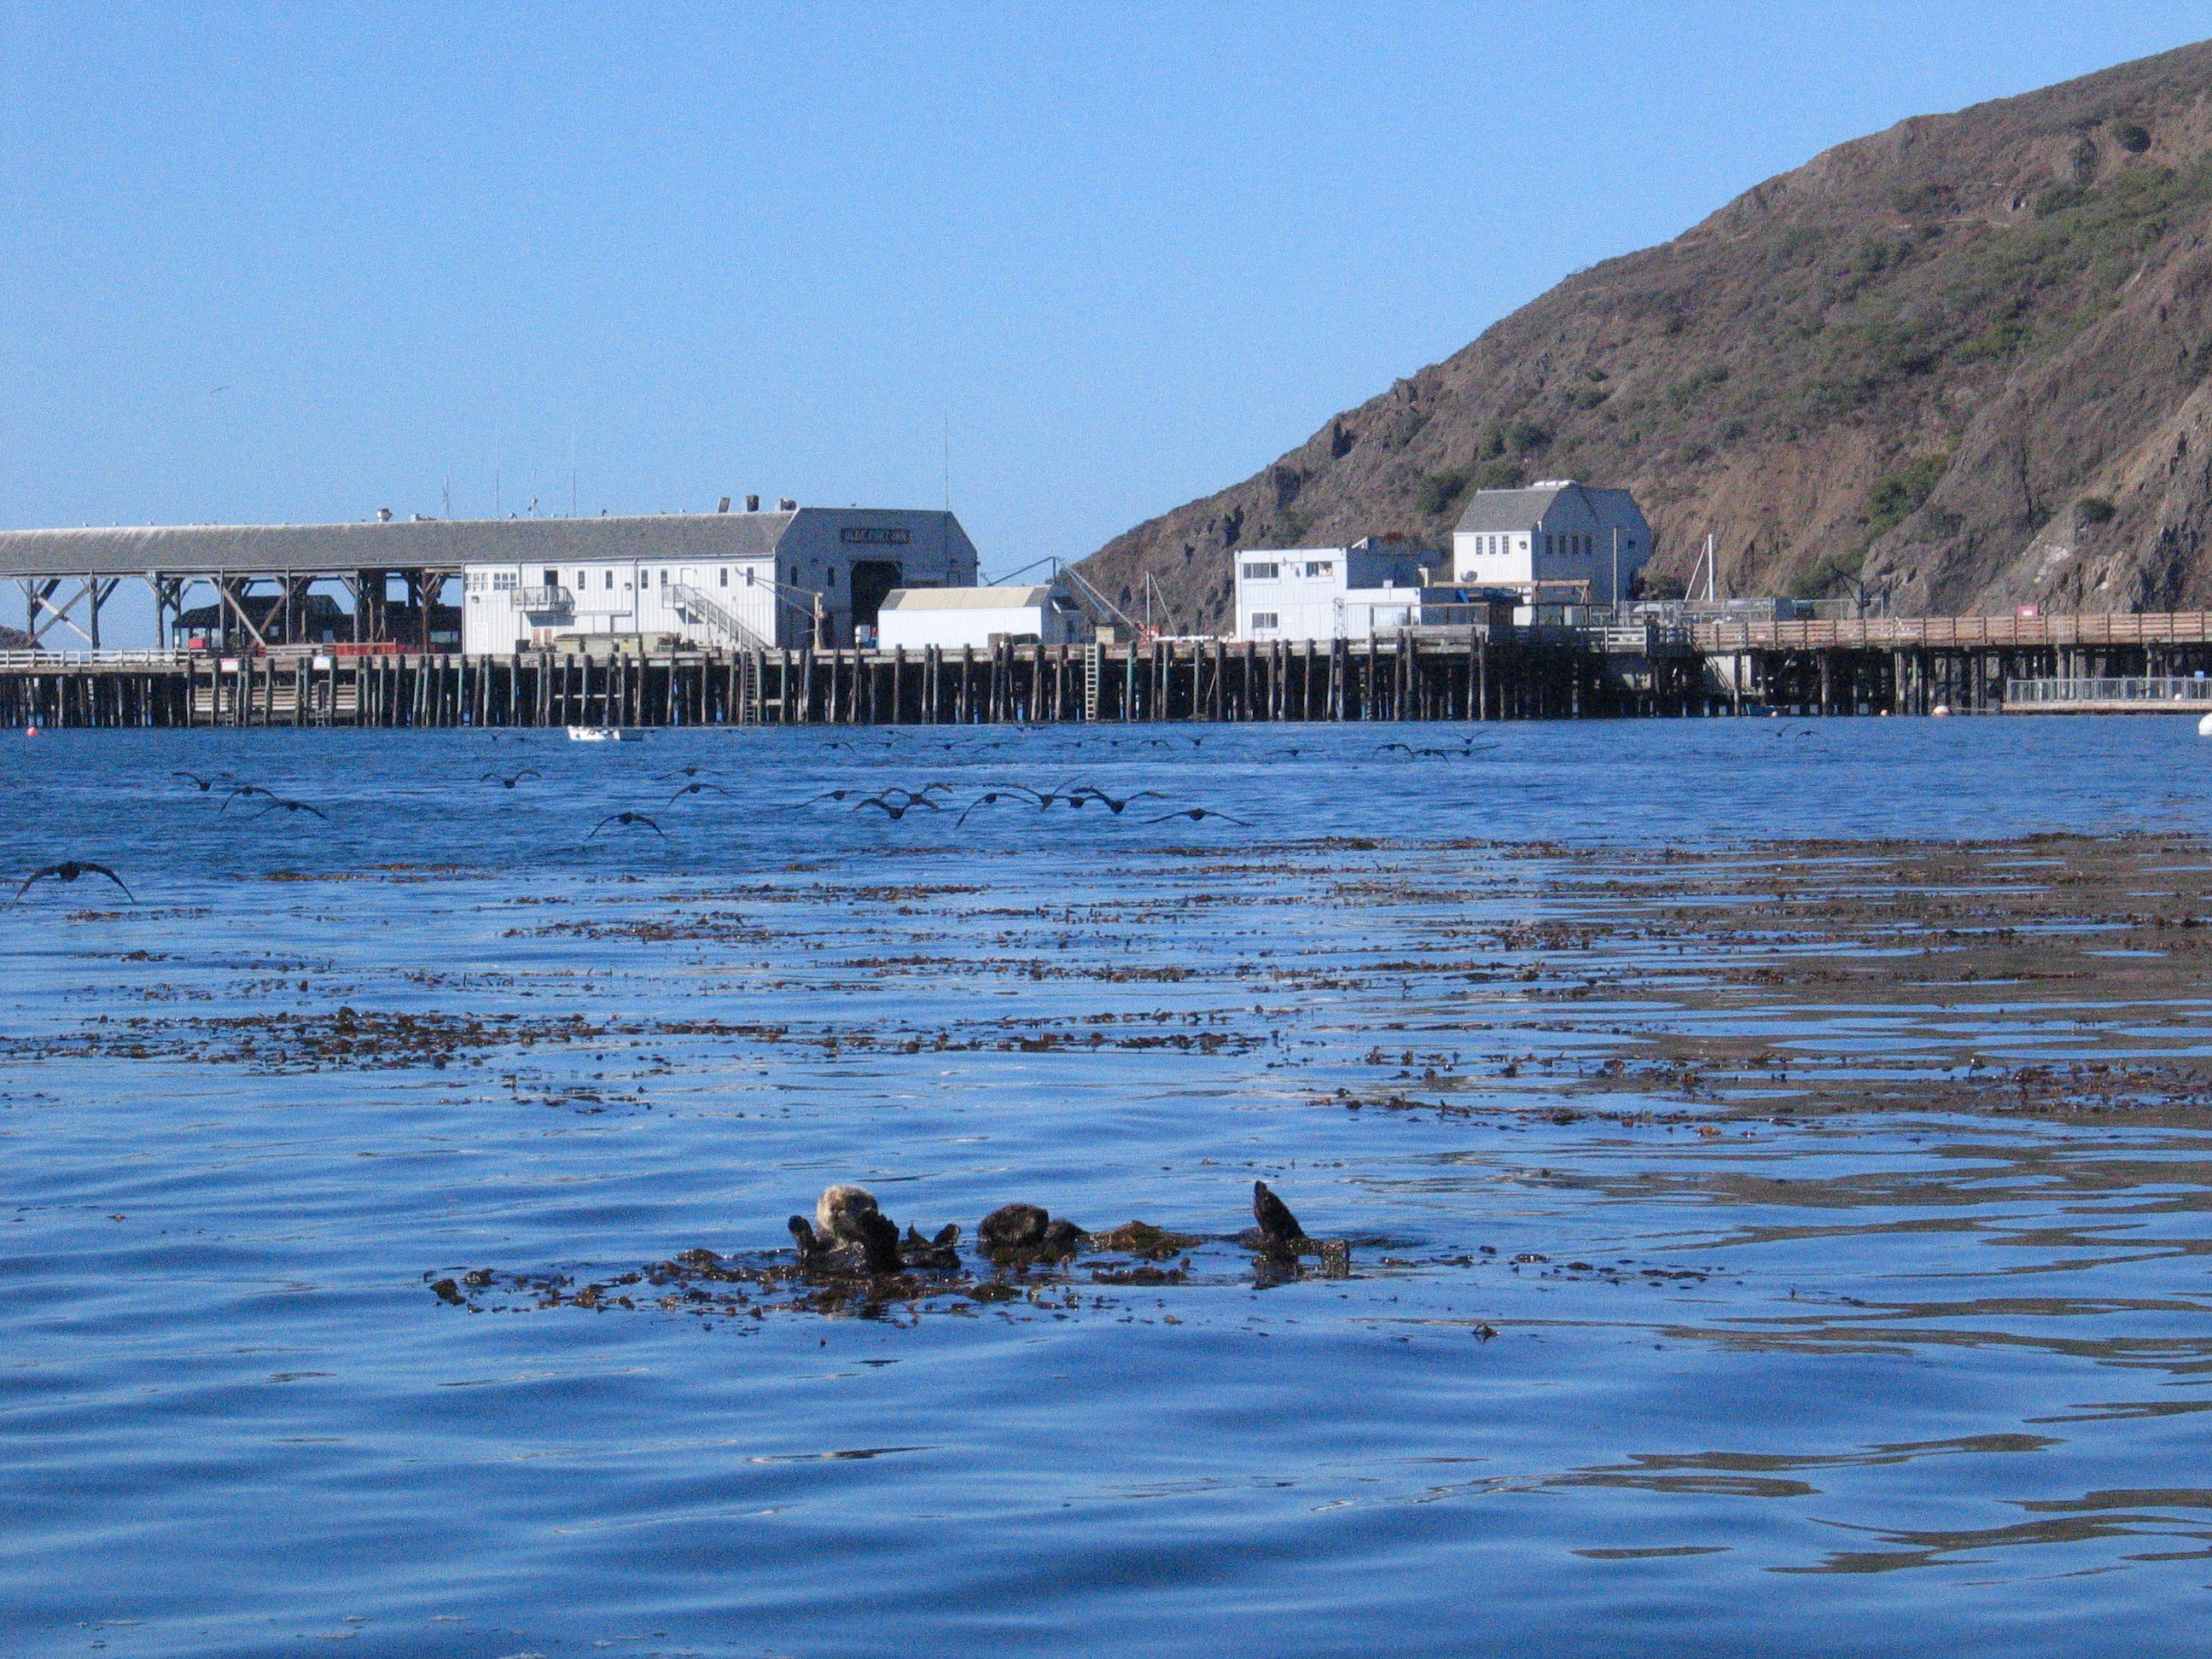 Otters at Port San Luis